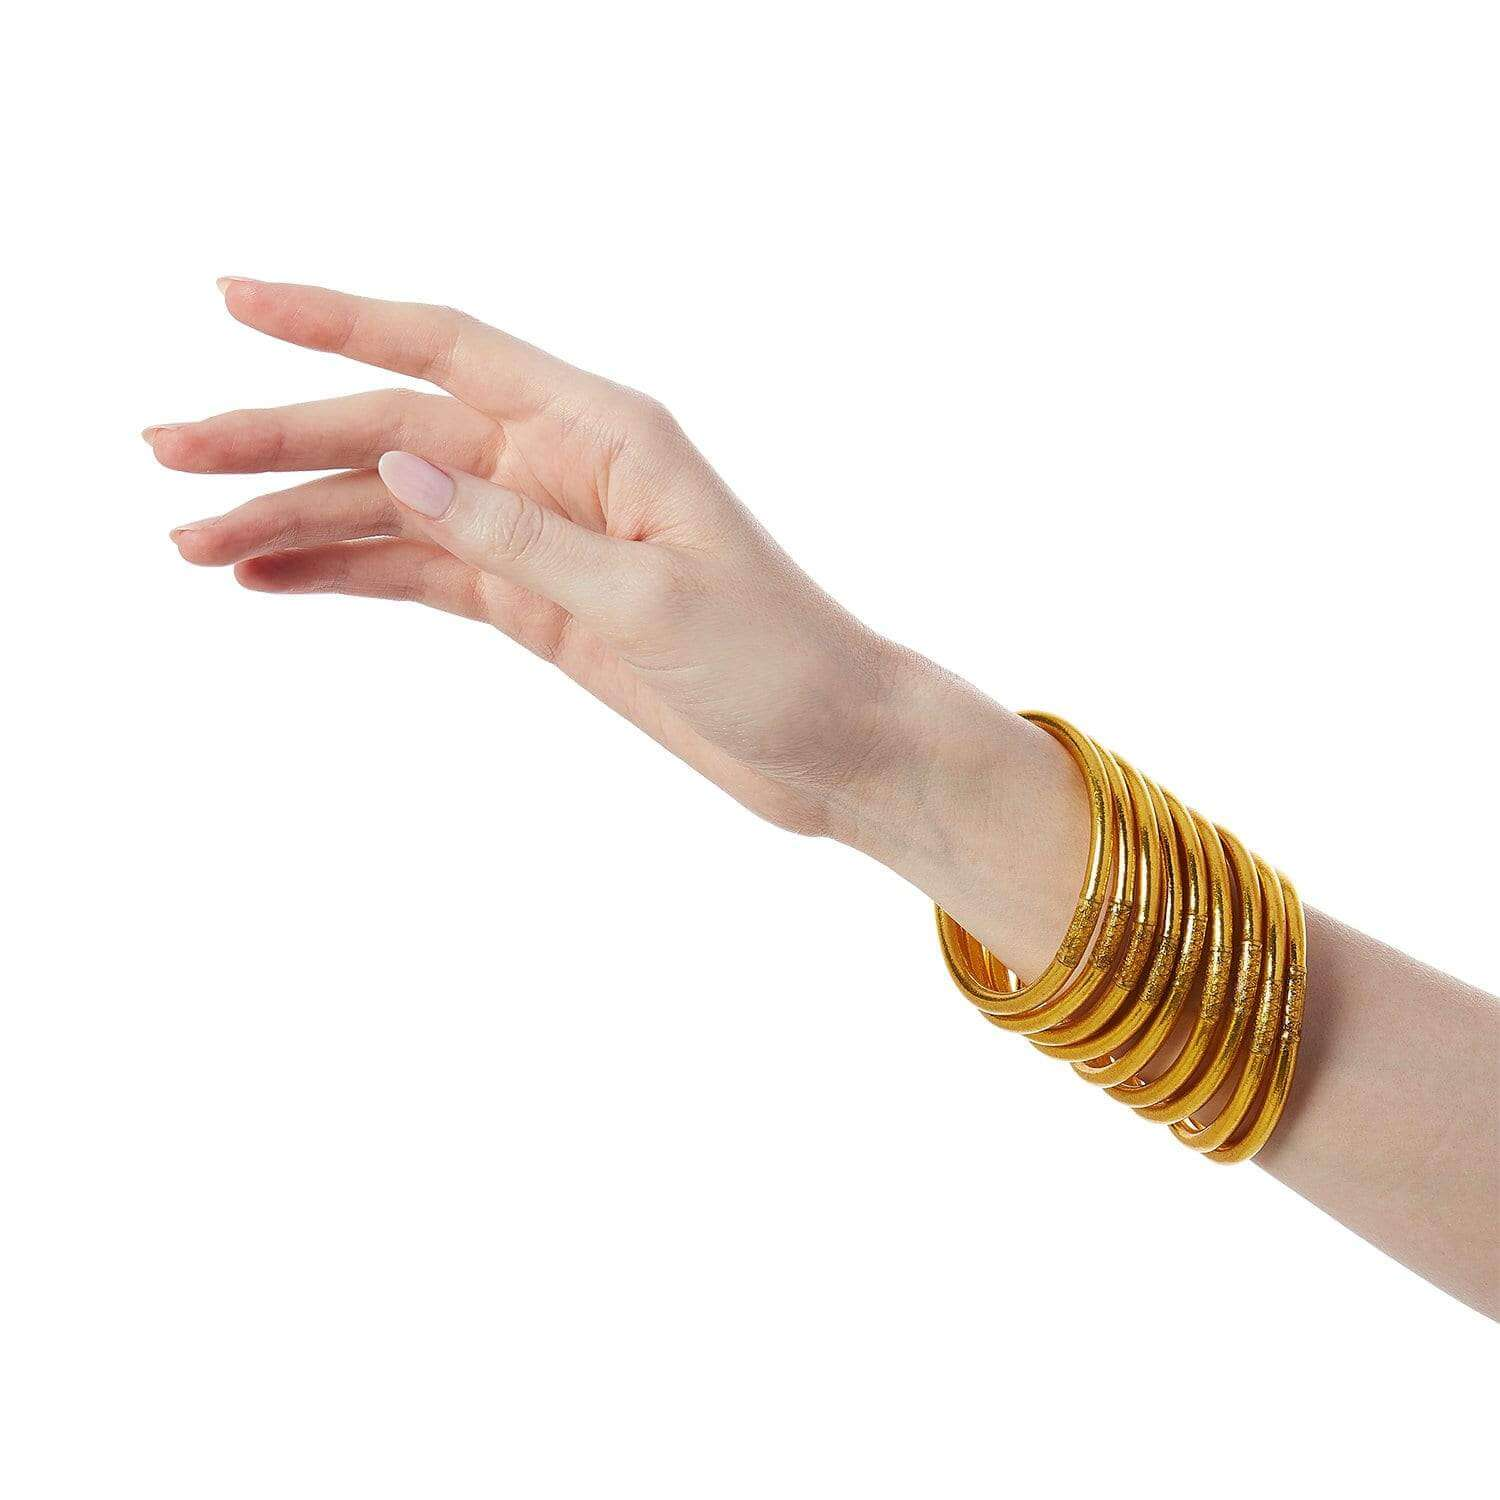 Gold All Weather Bangle - Serenity Prayer (styled on hands) - BuDhaGirl